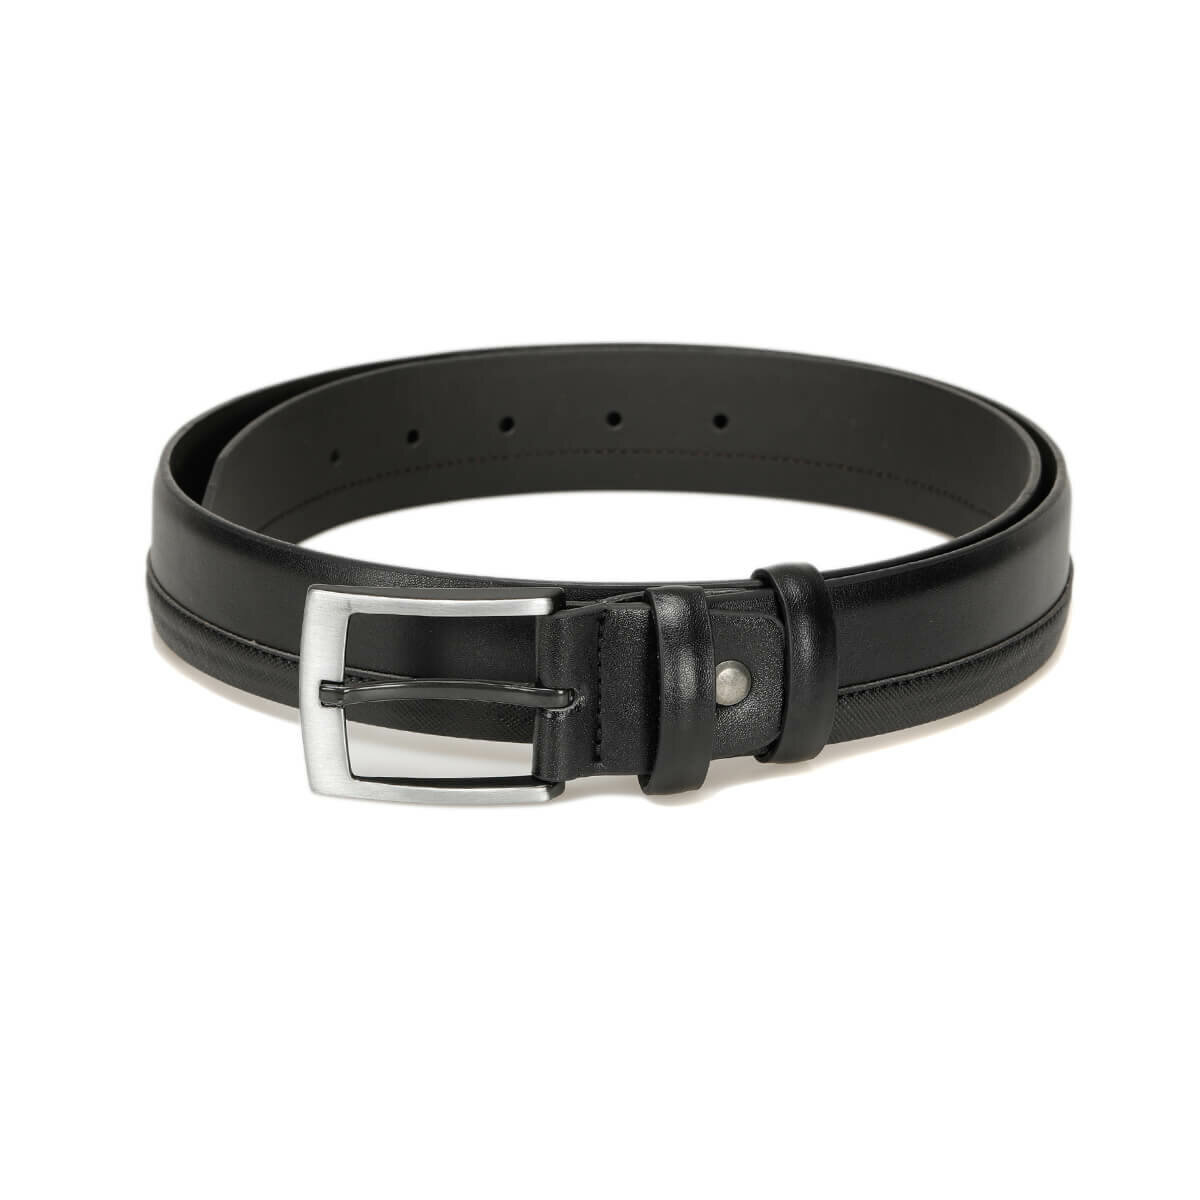 FLO MRAS3402 Black Male Belt Oxide